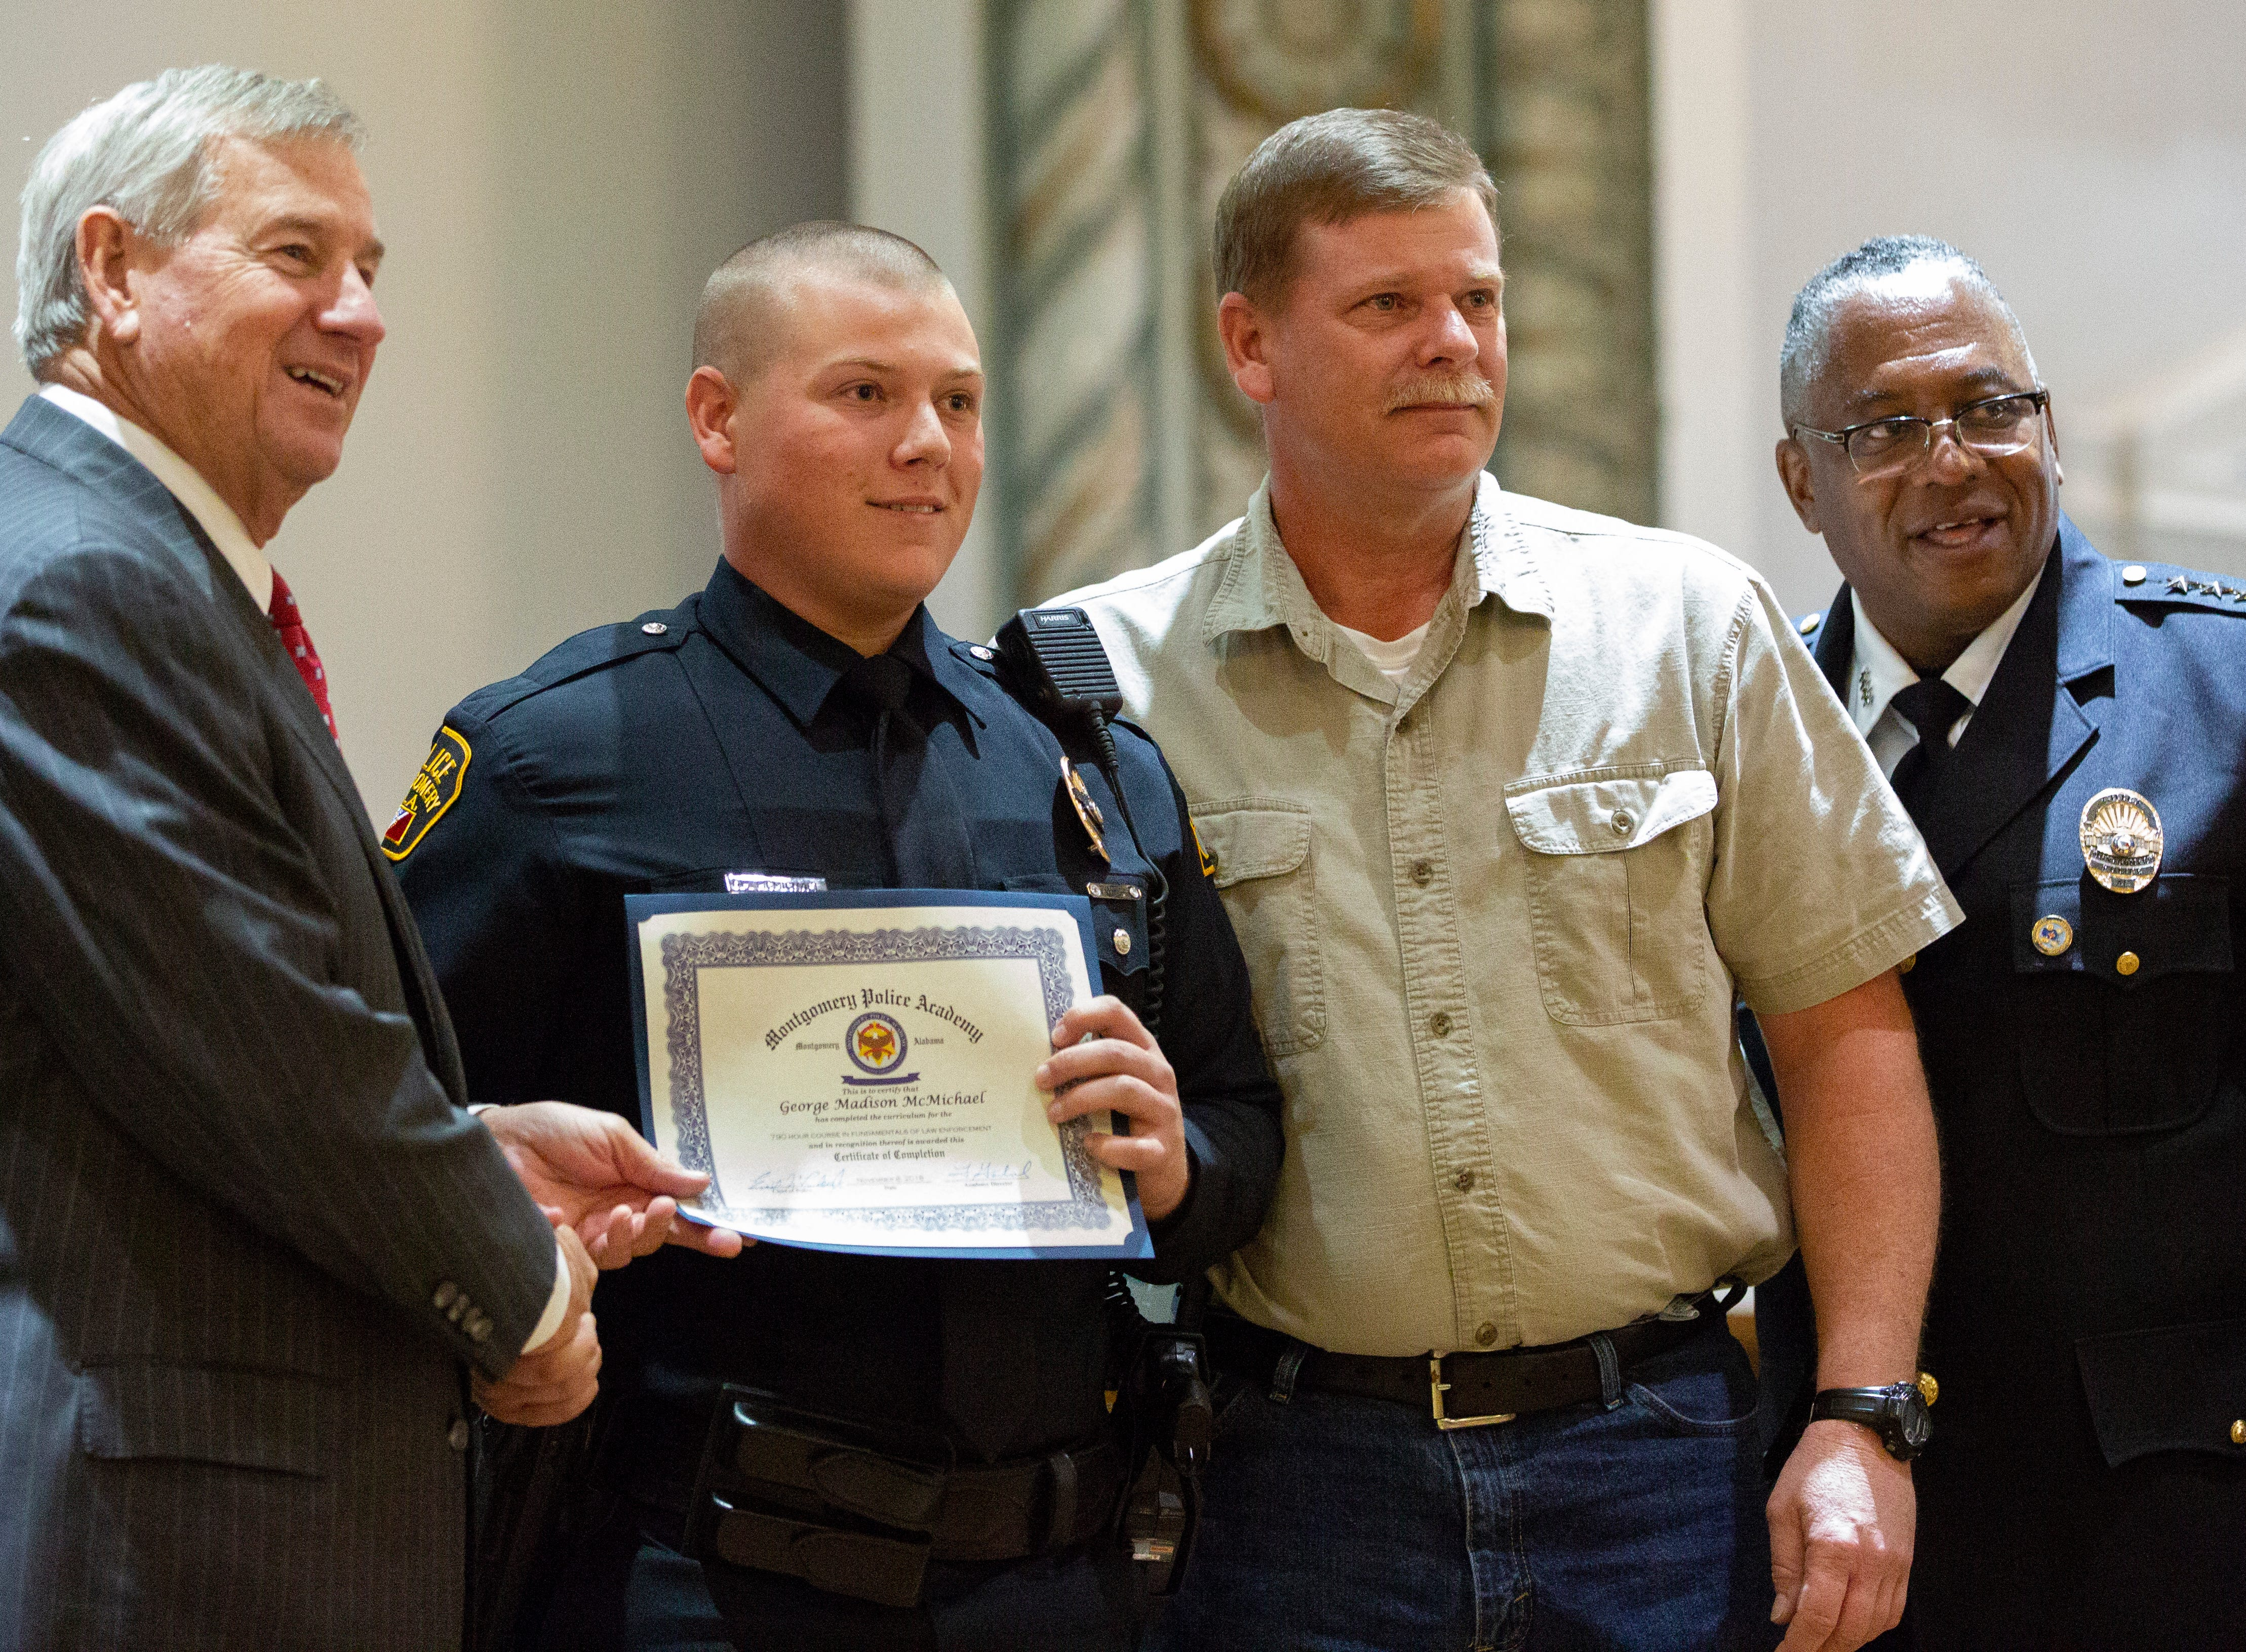 Montgomery police officer George McMichael poses for a photo after graduating from the academy.